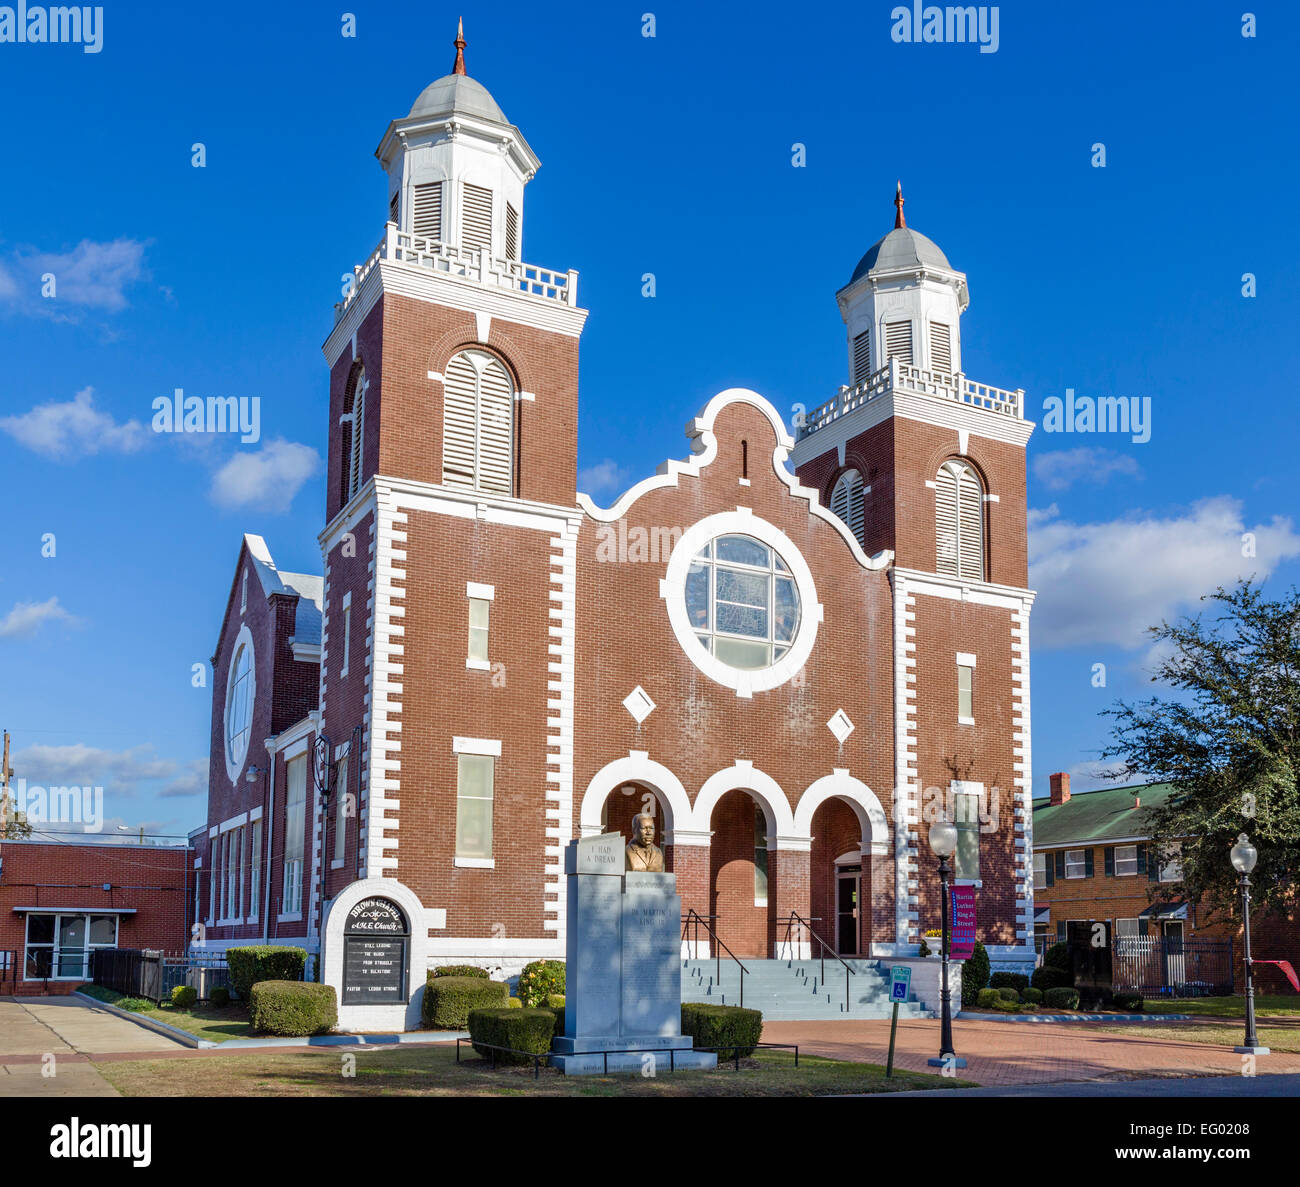 civil rights movement statue stock photos civil rights movement brown chapel ame church selma alabama usa the church was the starting